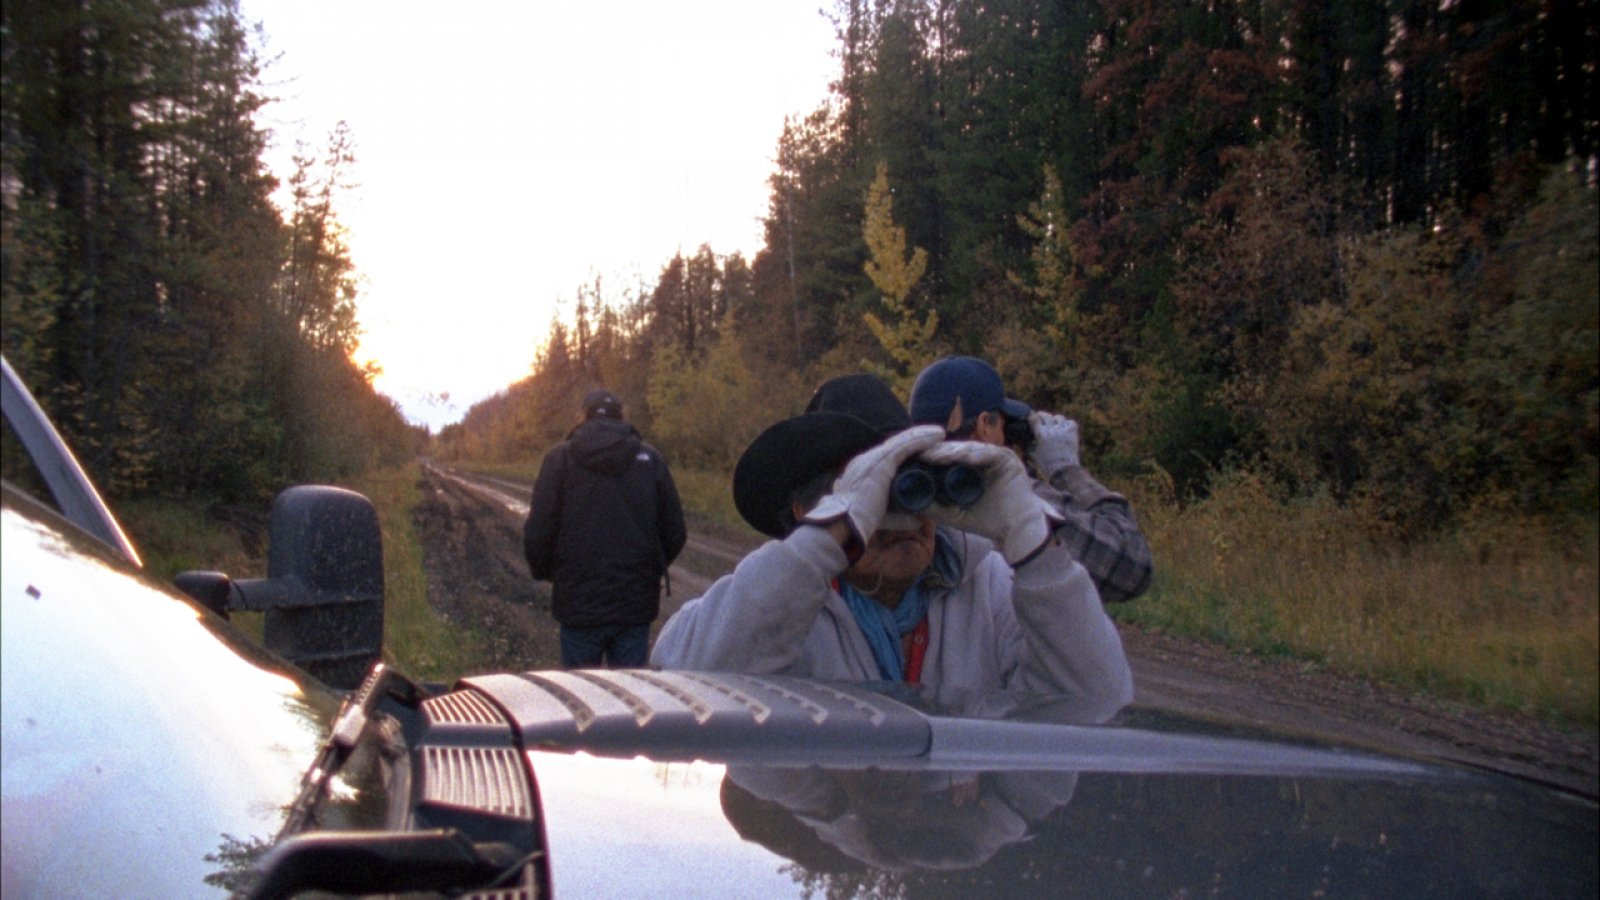 Brian Jungen and Duane Linklater, Modest Livelihood (still), 2012, super 16mm film, transferred to blu-ray, 50 minutes, silent